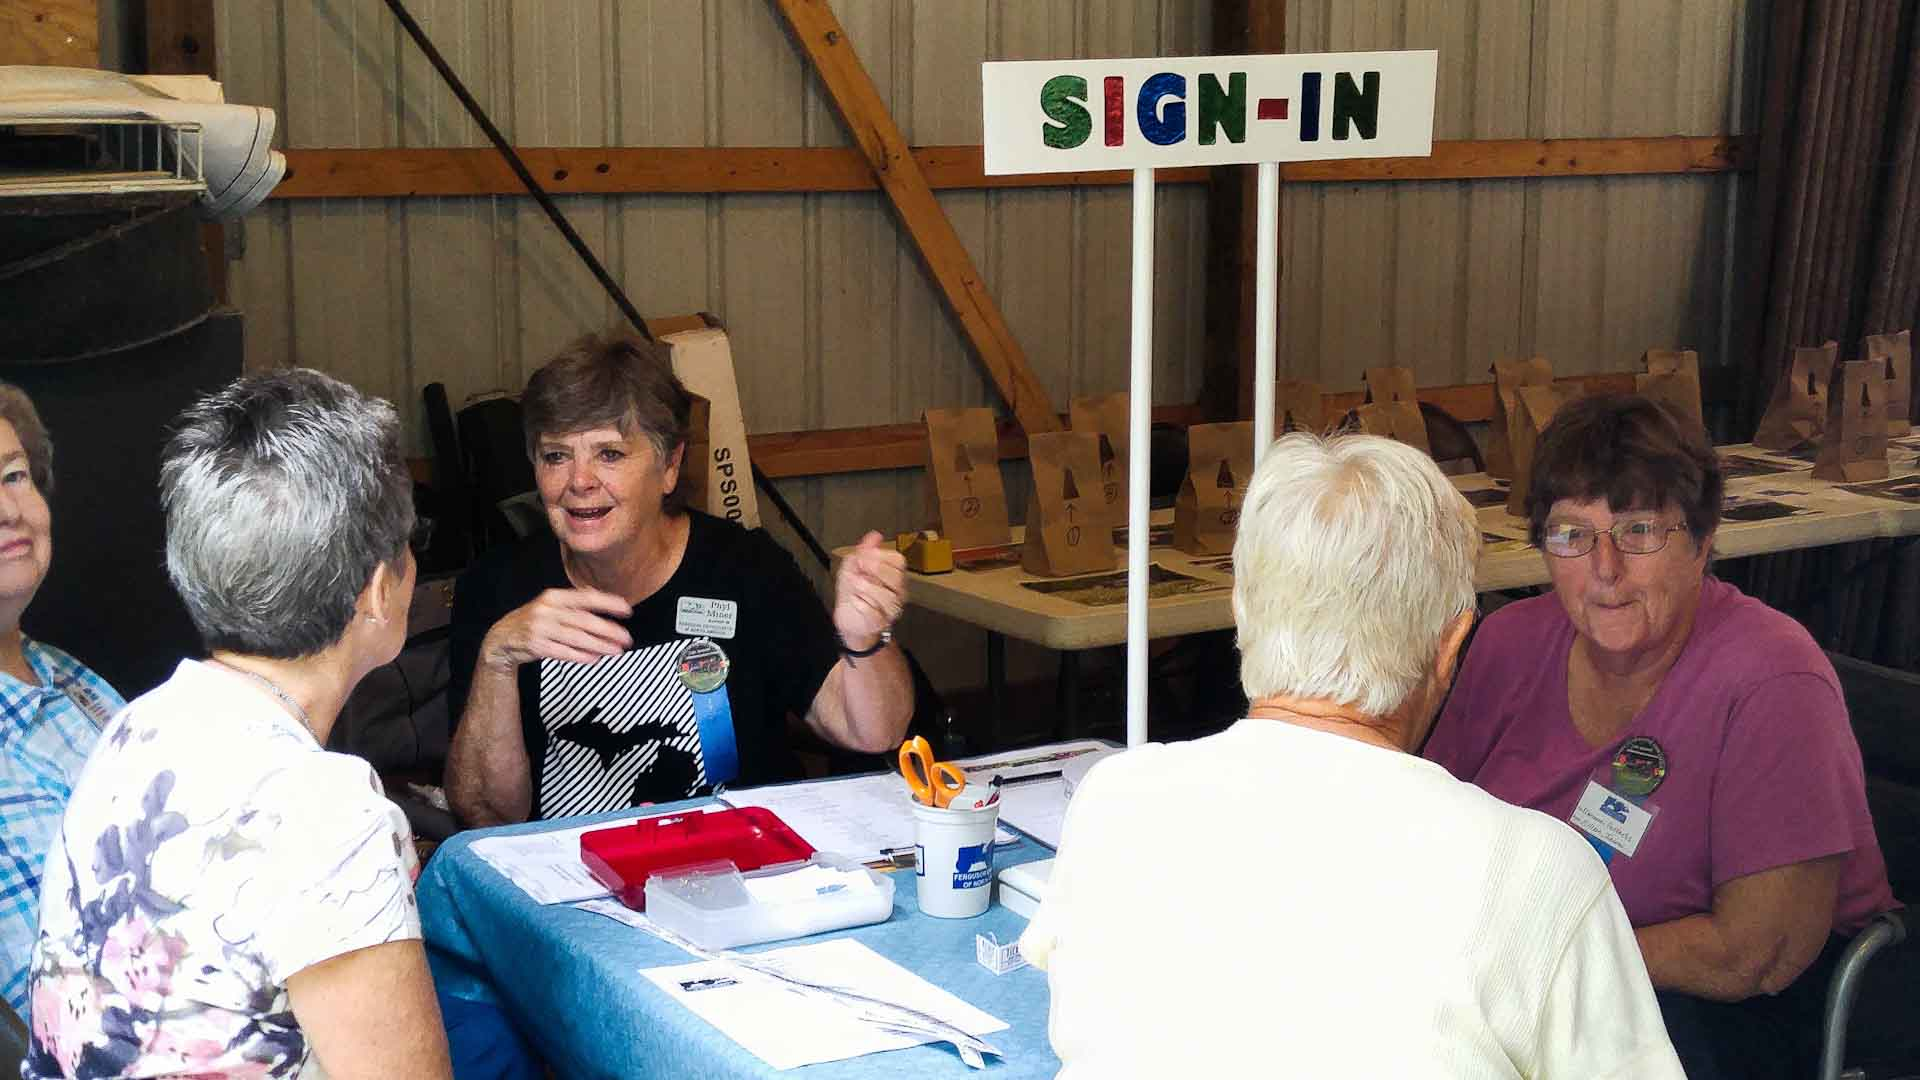 The sign-in table with Phyl Miner and Marianne Folkerts. Joy Kruse is to the far left. Not sure who the others with backs to us are.